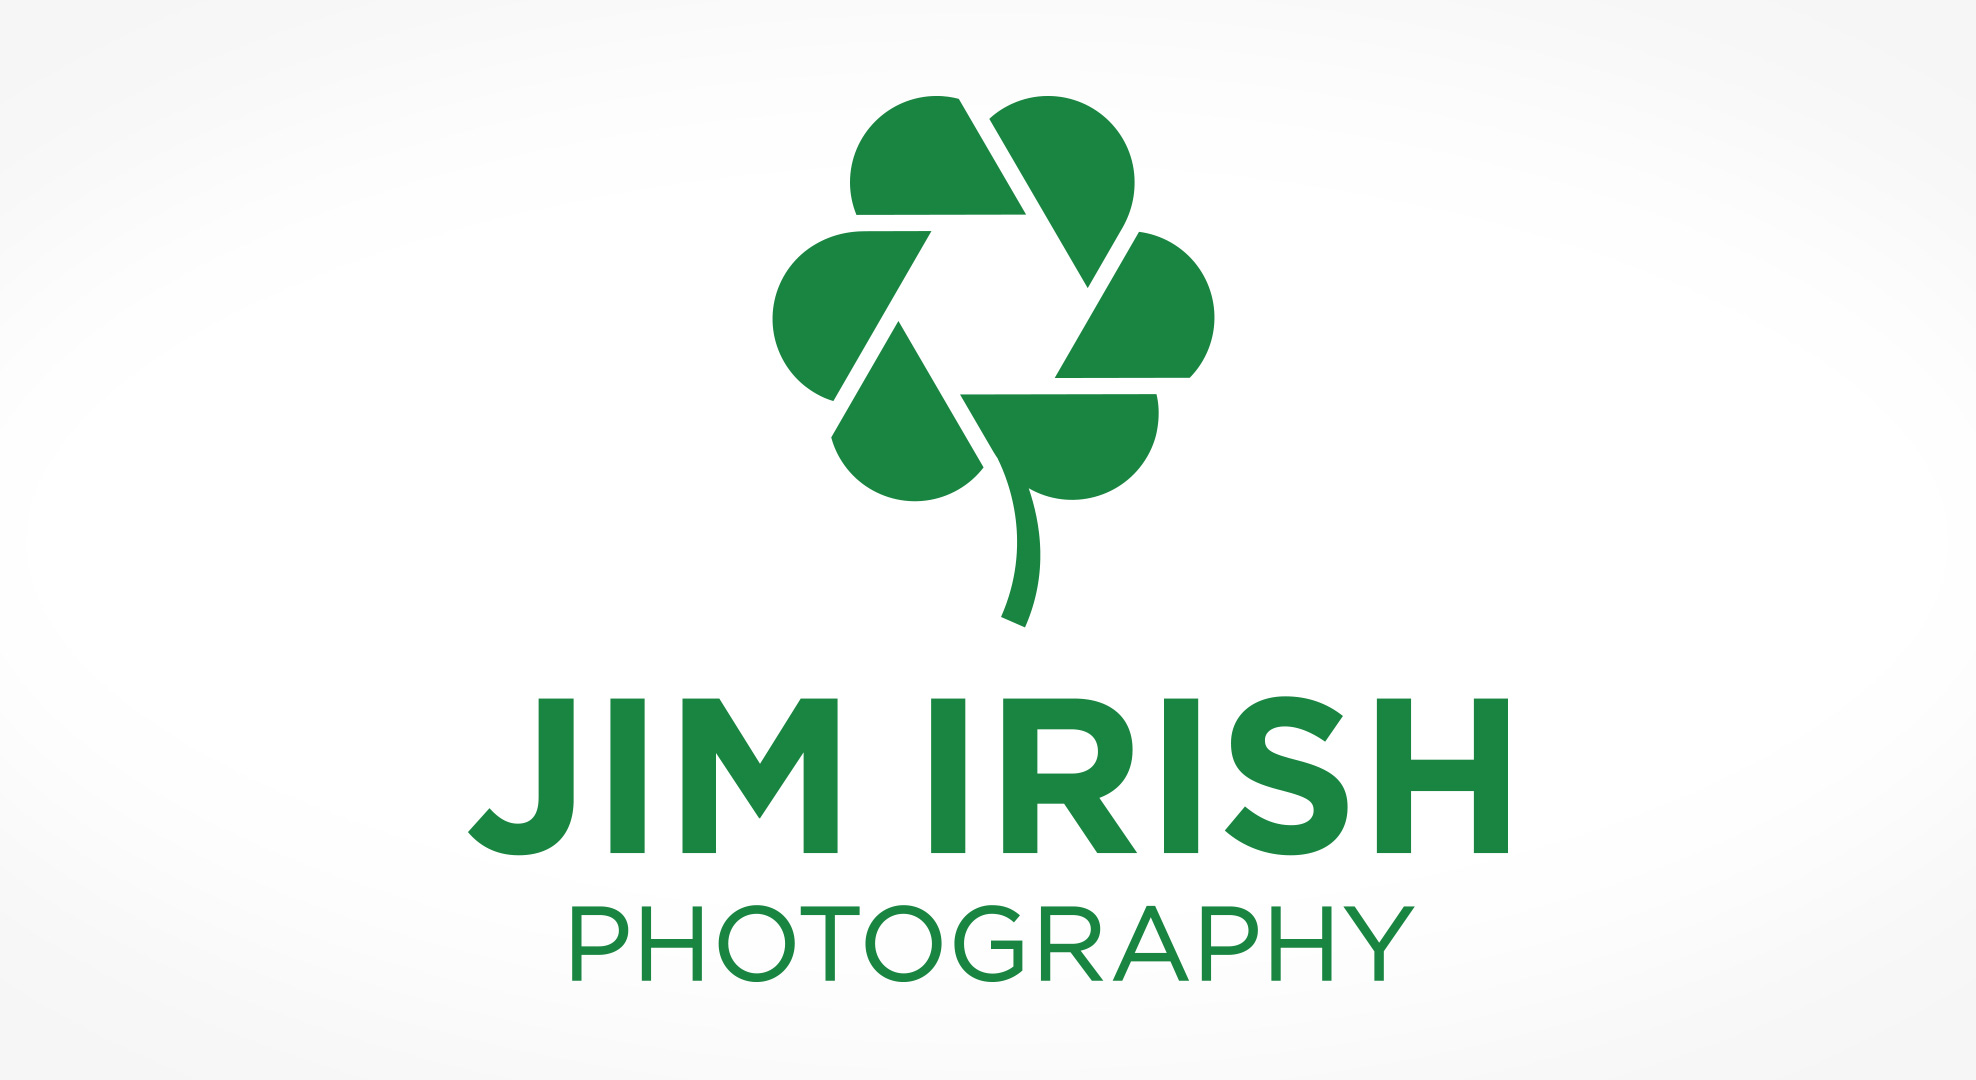 Jim Irish Photography